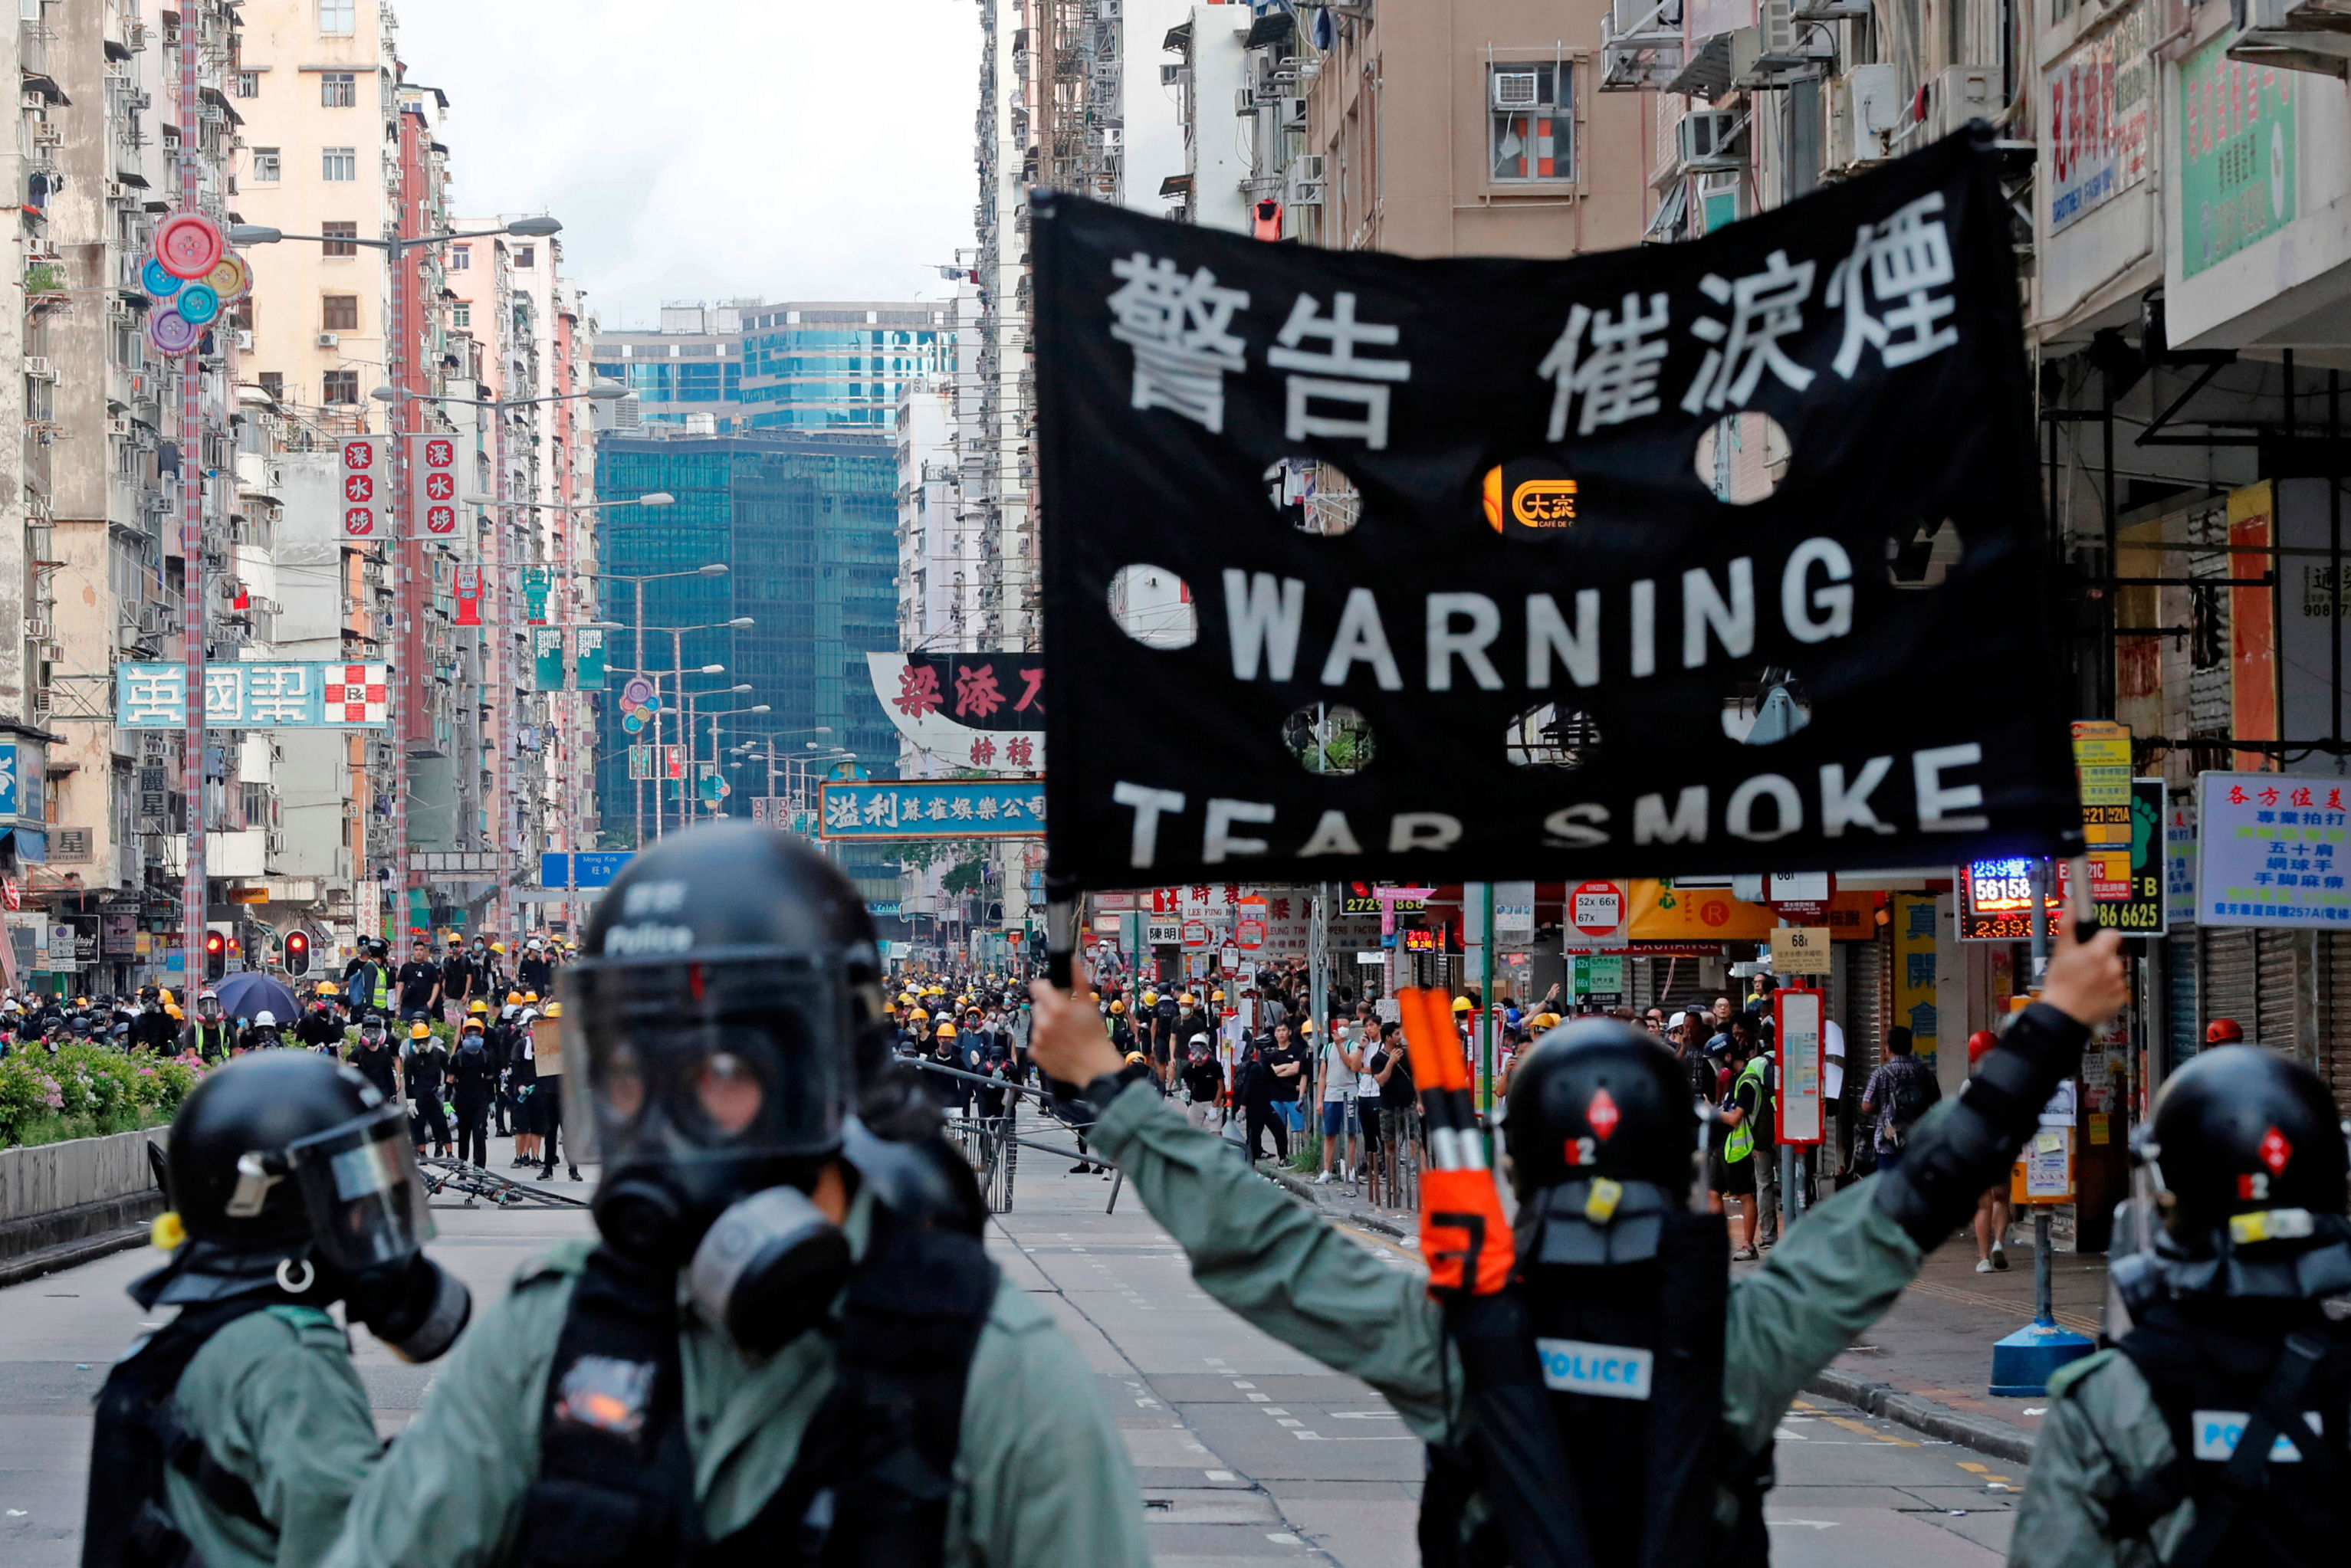 A riot police raises a warning flag as they try to disperse anti-extradition bill protesters by tear gas at Sham Shui Po in Hong Kong, China August 11, 2019. REUTERS/Tyrone Siu